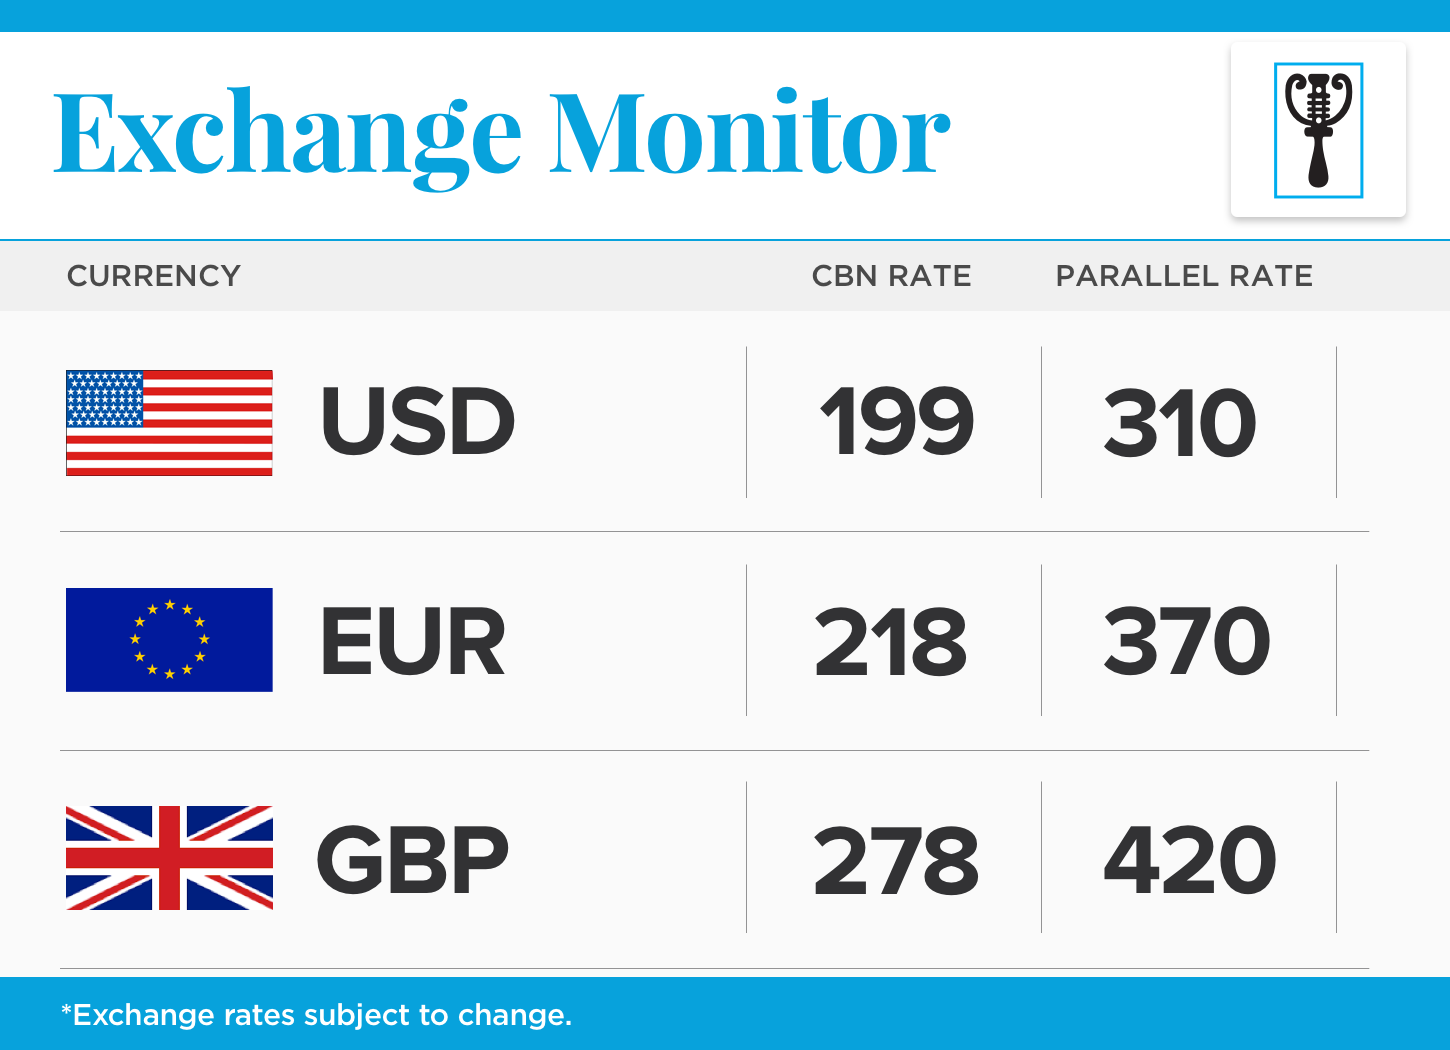 Dollar Exchange Rate For 24, Feb 2016